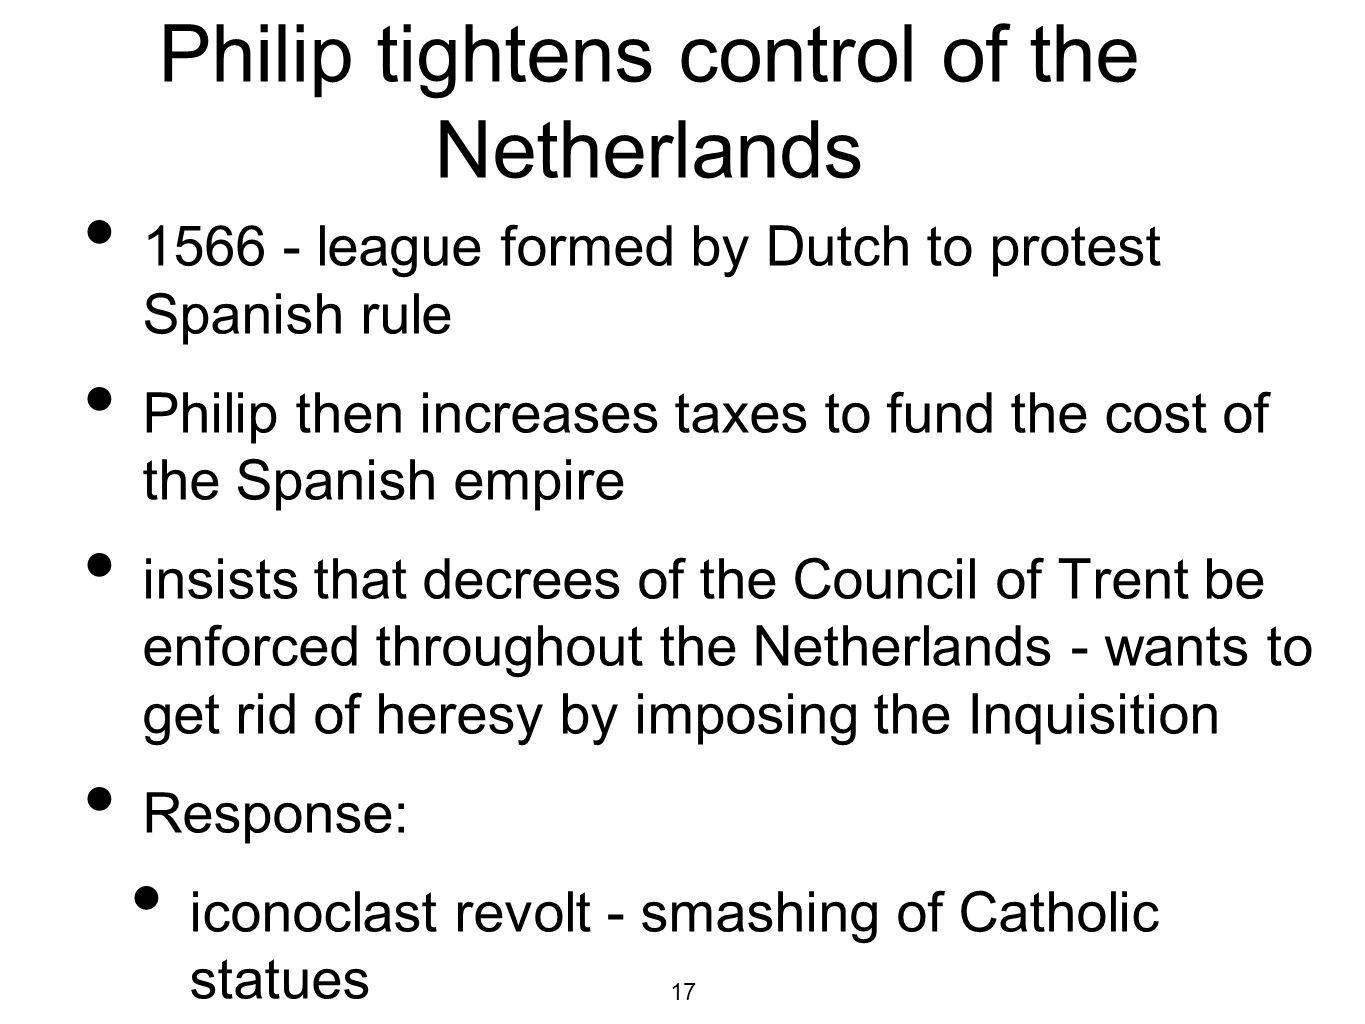 17 Philip tightens control of the Netherlands 1566 - league formed by Dutch to protest Spanish rule Philip then increases taxes to fund the cost of the Spanish empire insists that decrees of the Council of Trent be enforced throughout the Netherlands - wants to get rid of heresy by imposing the Inquisition Response: iconoclast revolt - smashing of Catholic statues